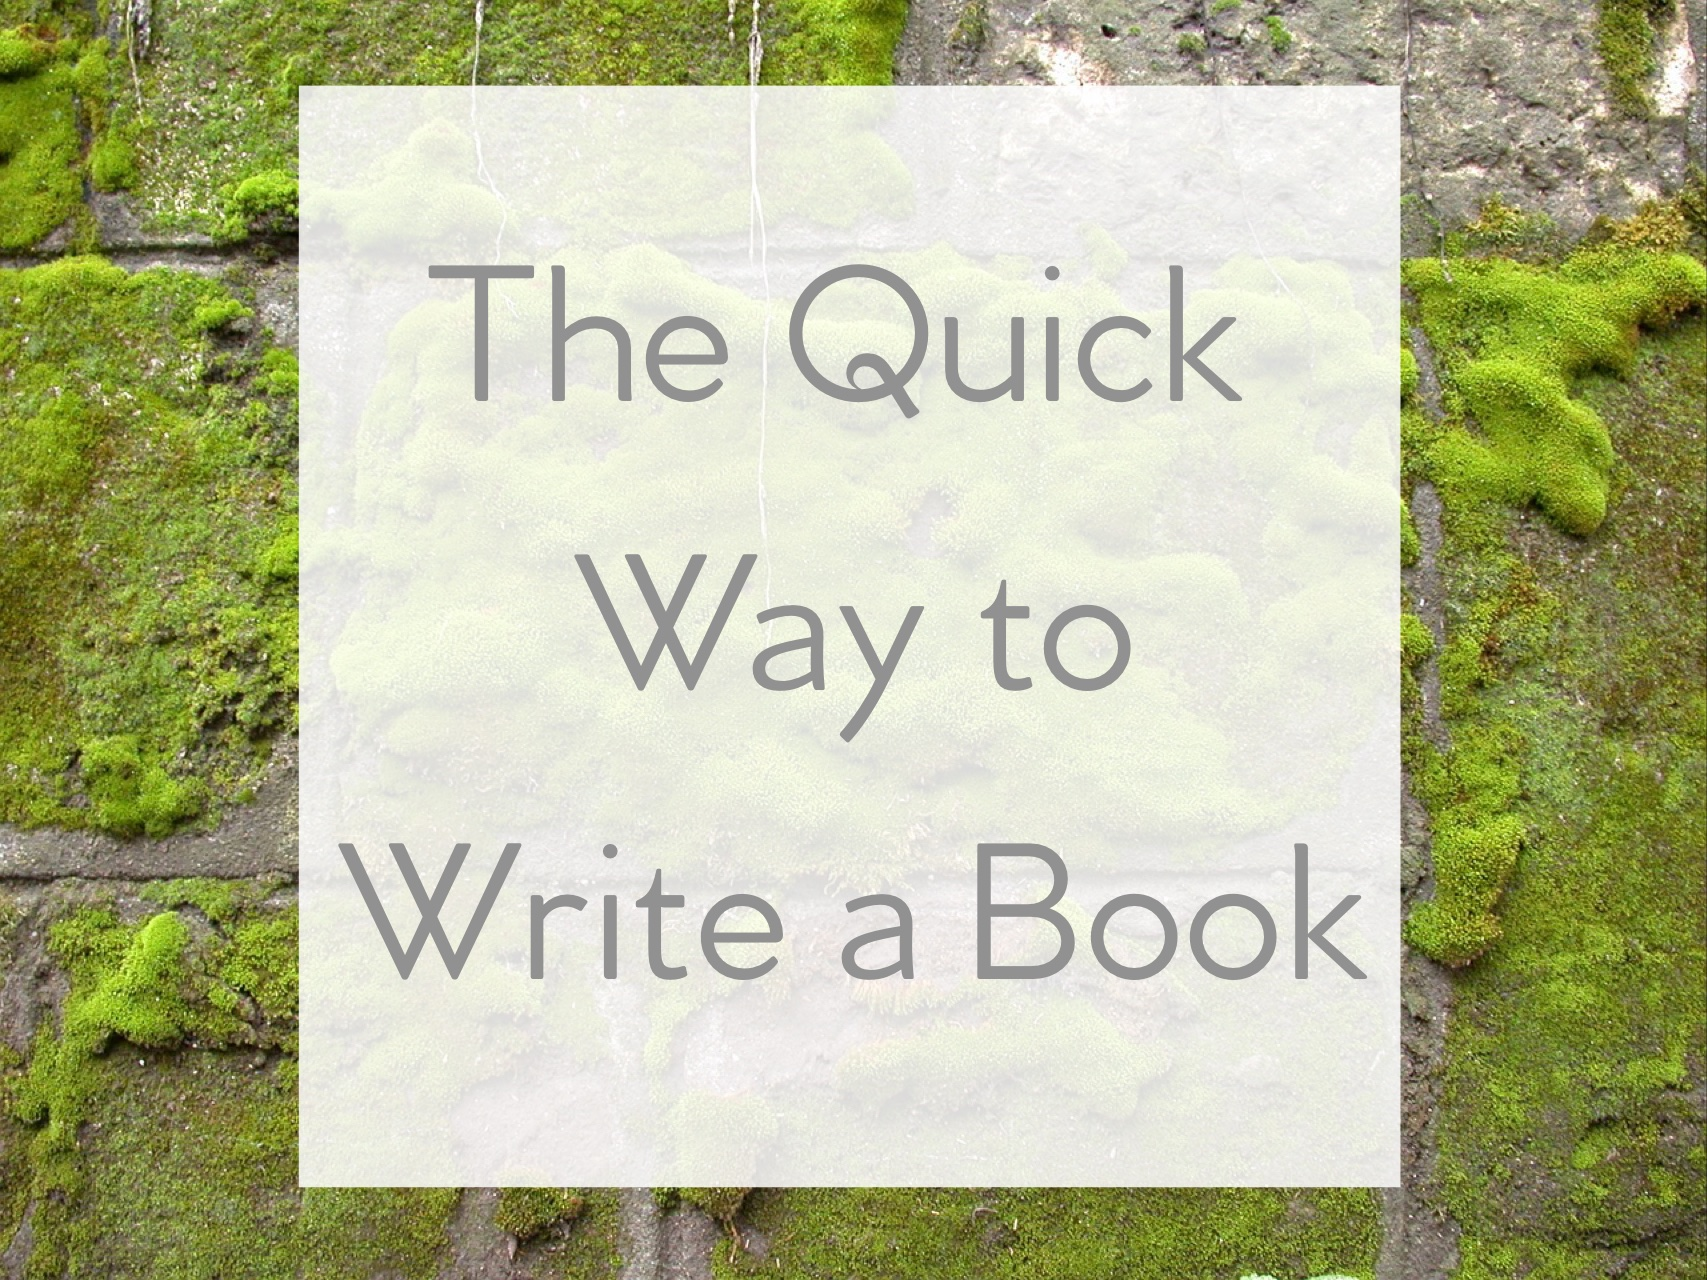 The quick way to write a book